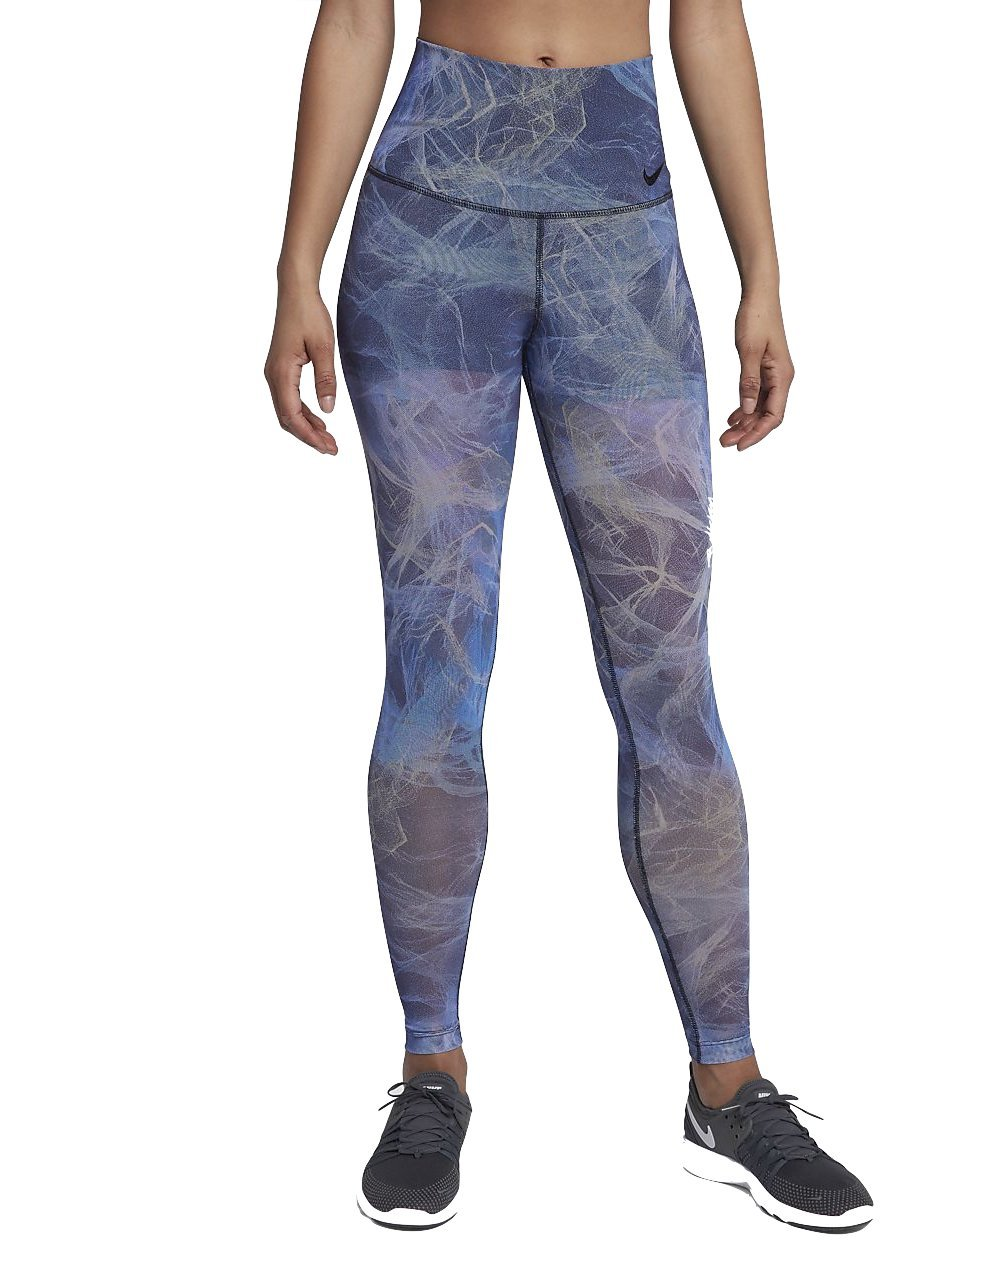 NIKE Power Trainings Tights Women's (Royal Tint/Black, XS)